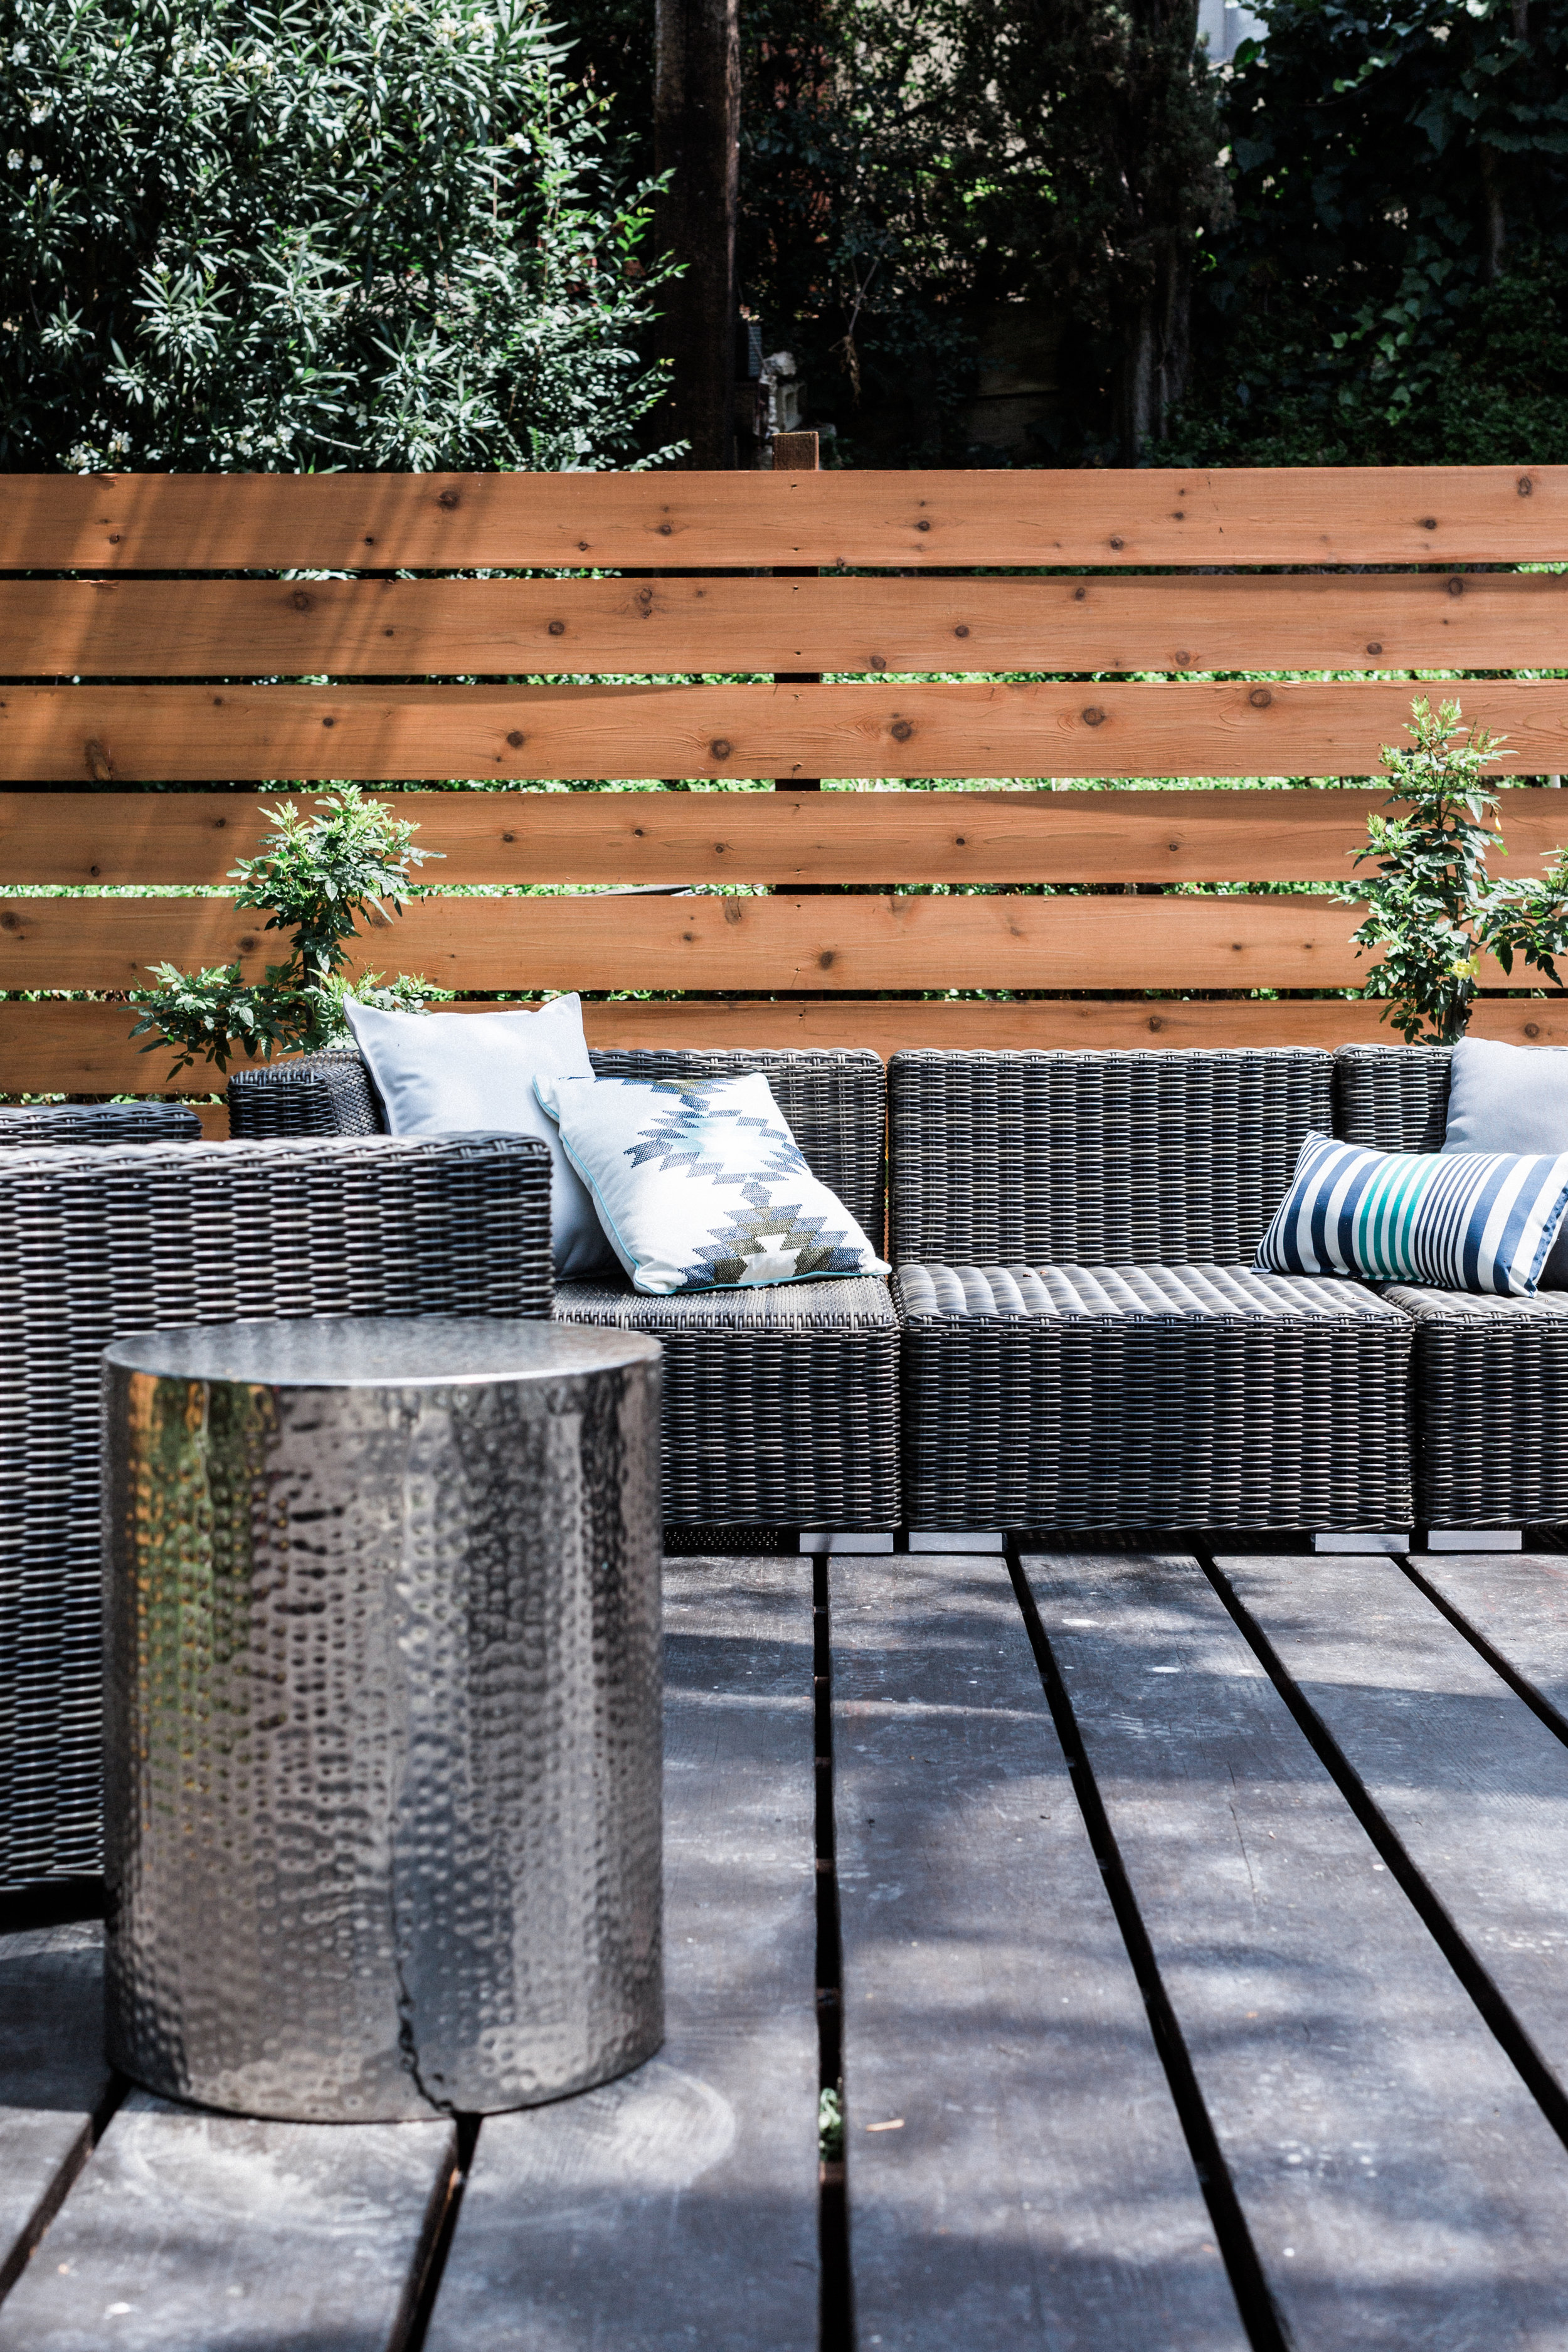 The awesome backyard deck is made even more welcoming with a sectional sofa.